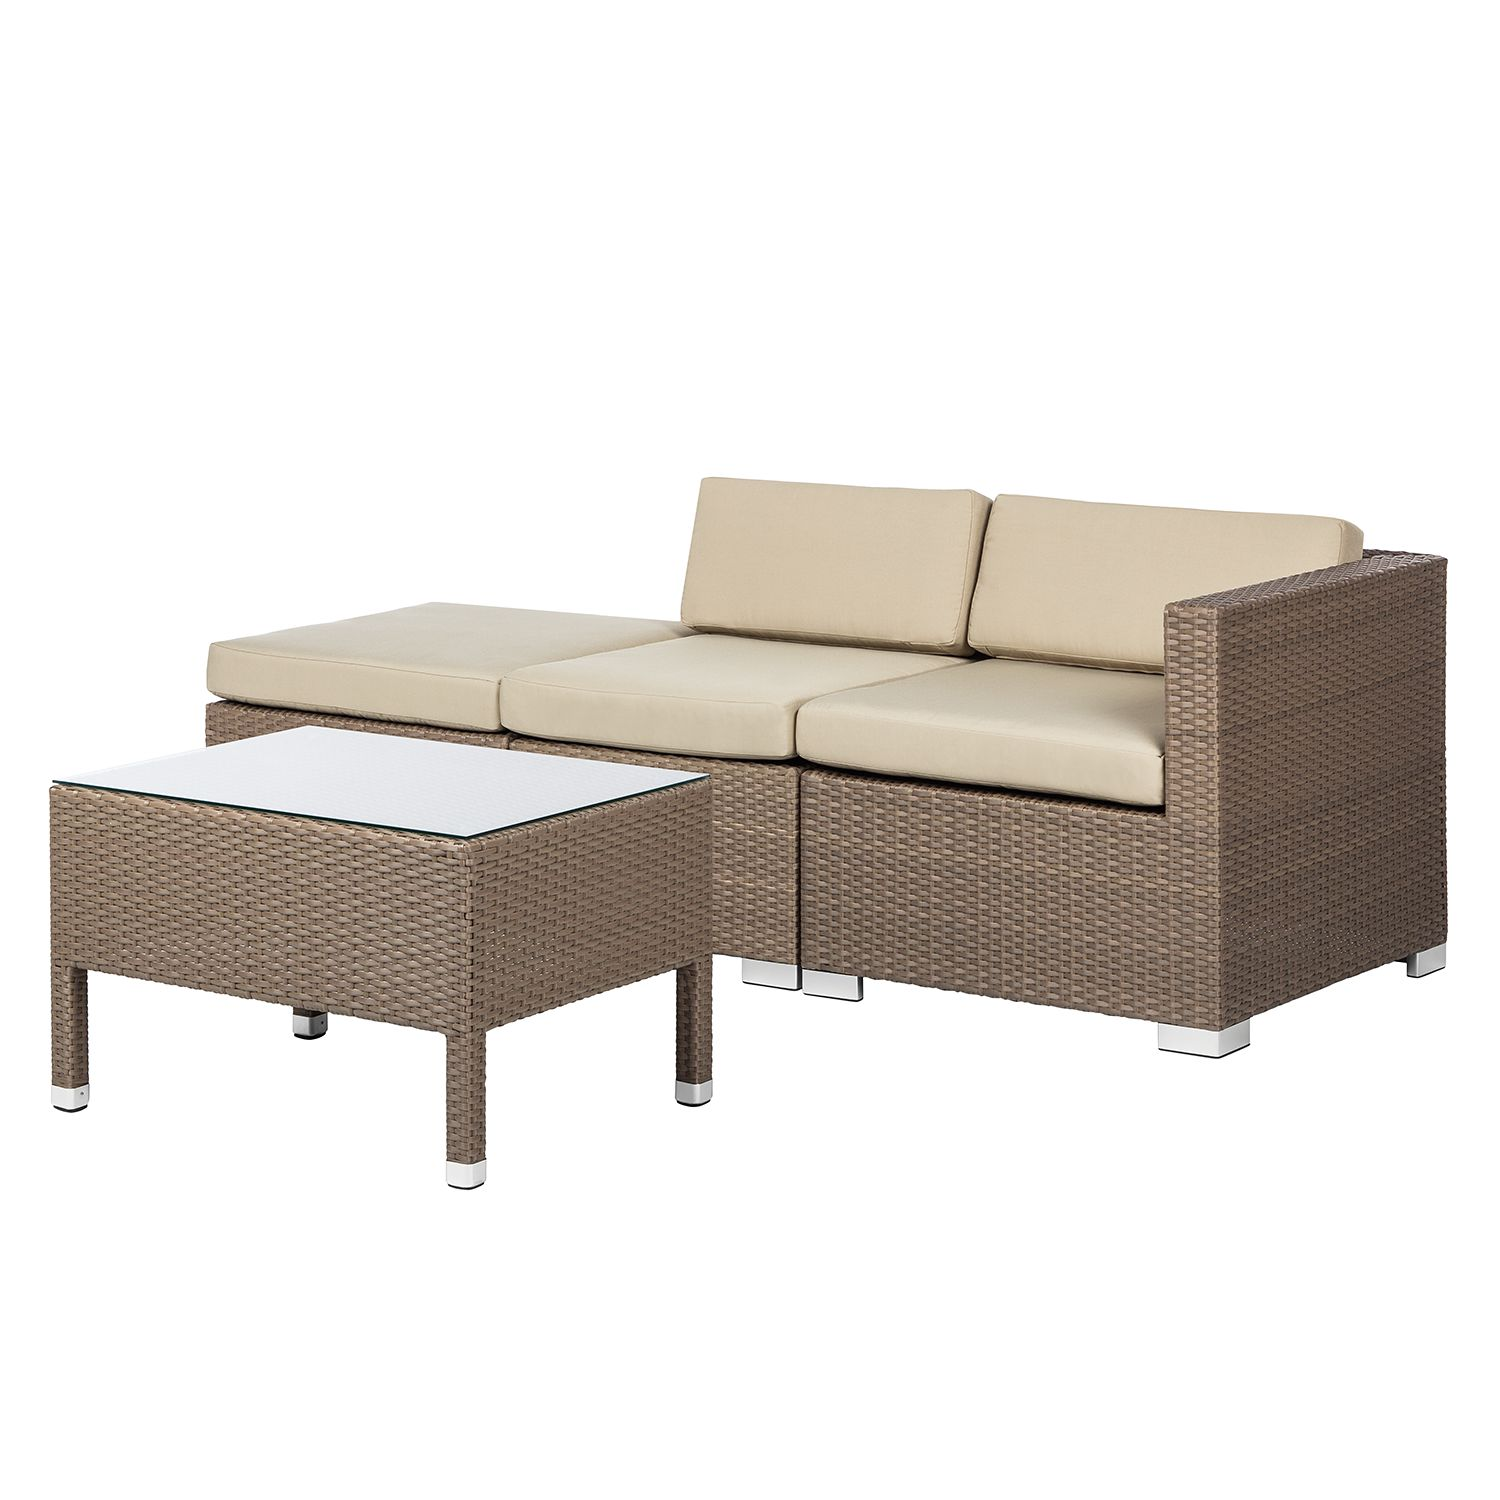 gartengruppe facil i 4 teilig polyrattan cappuccino kings garden jetzt bestellen. Black Bedroom Furniture Sets. Home Design Ideas